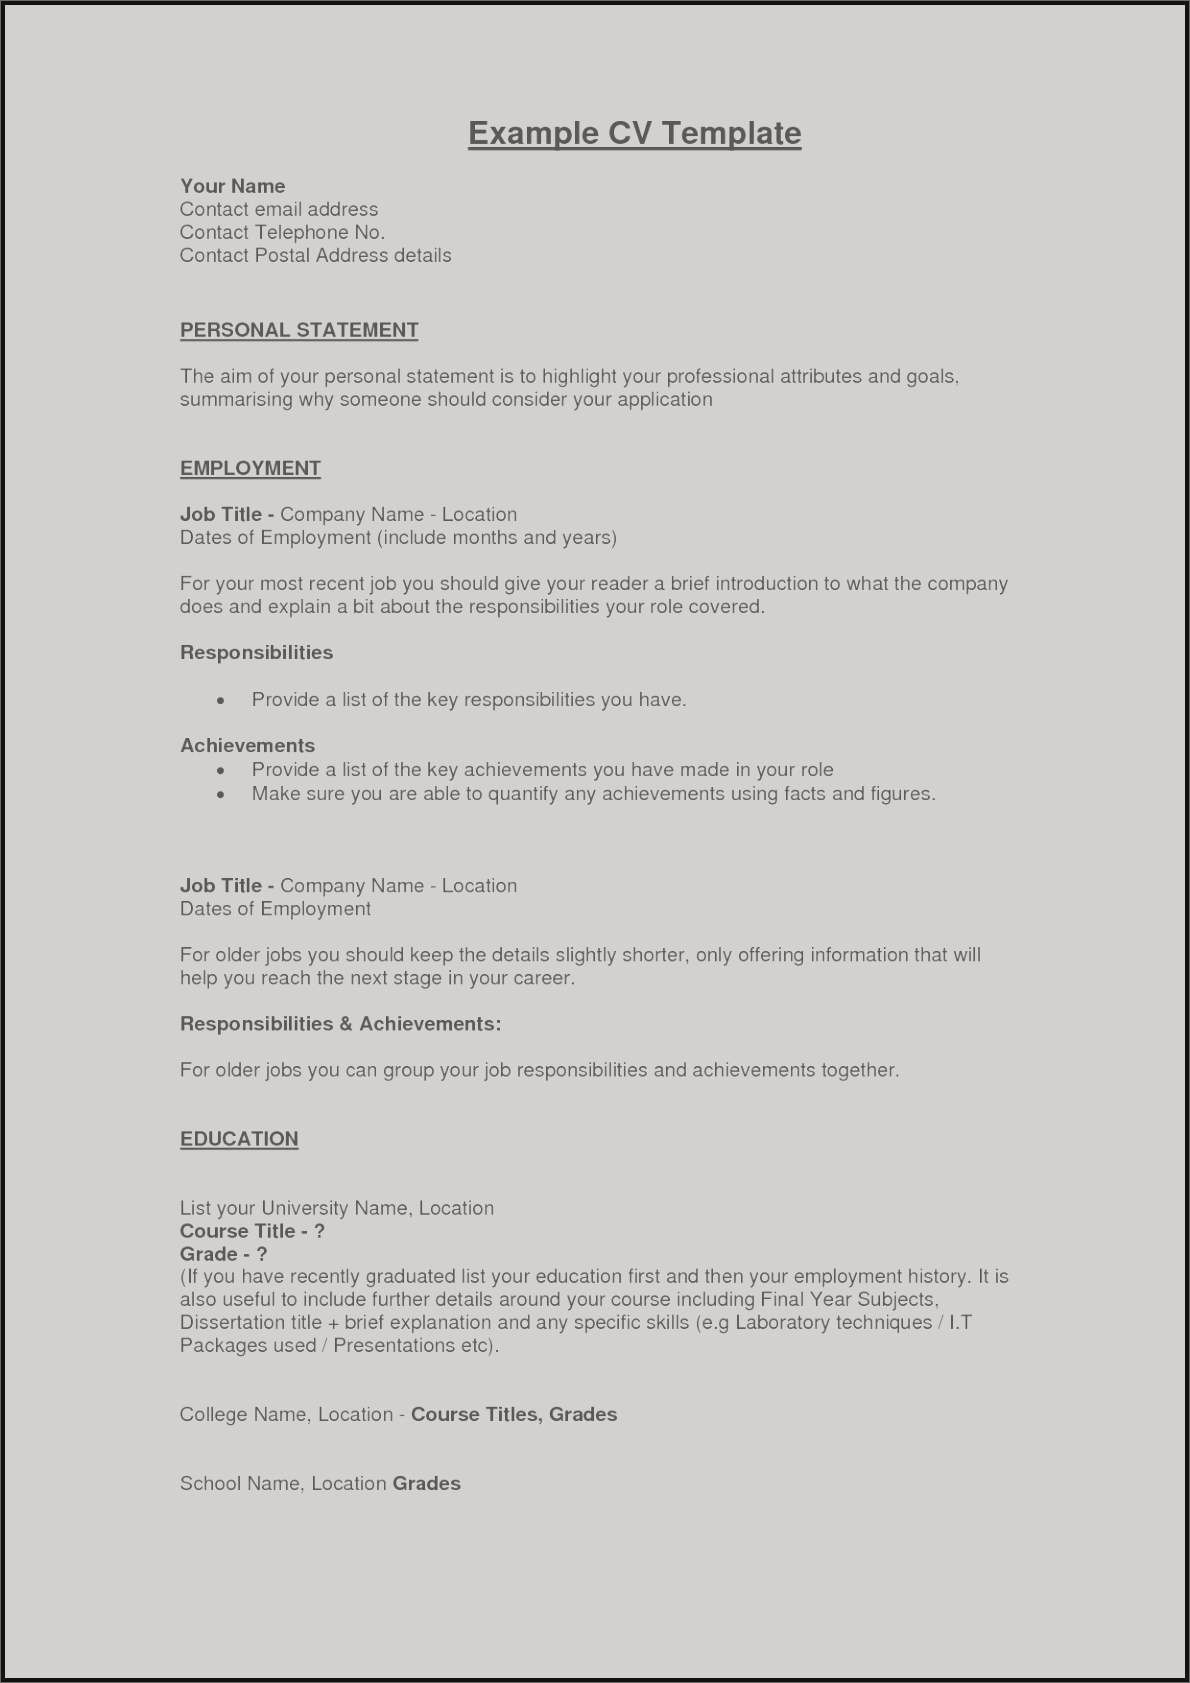 business analyst resume examples Collection-Example Business Analyst Resume Best Example Perfect Resume Fresh Examples Resumes Ecologist Resume 0d 5-m